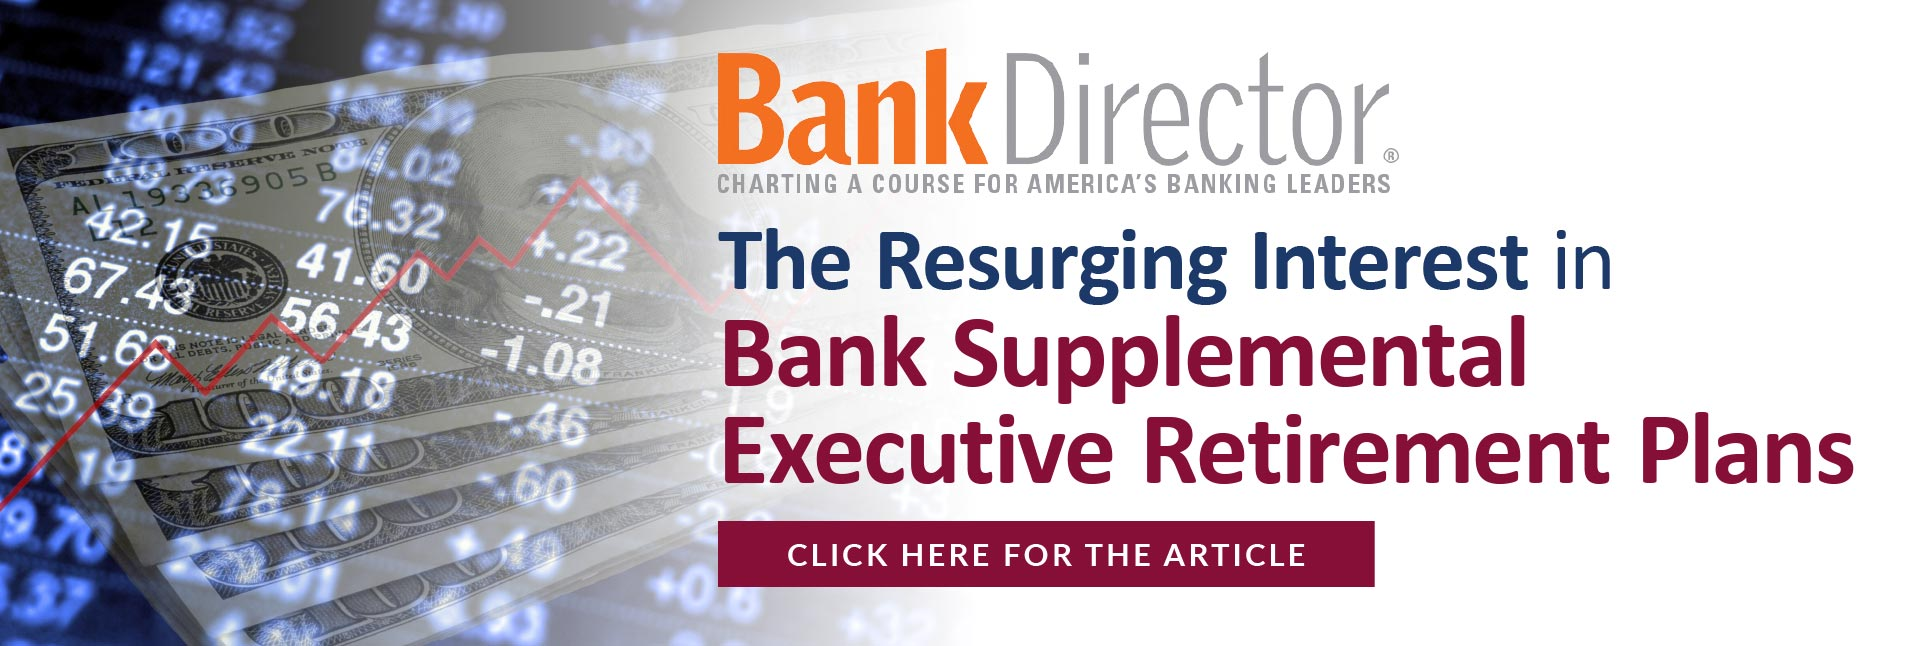 The Resurging Interest in Bank Supplemental Executive Retirement Plans